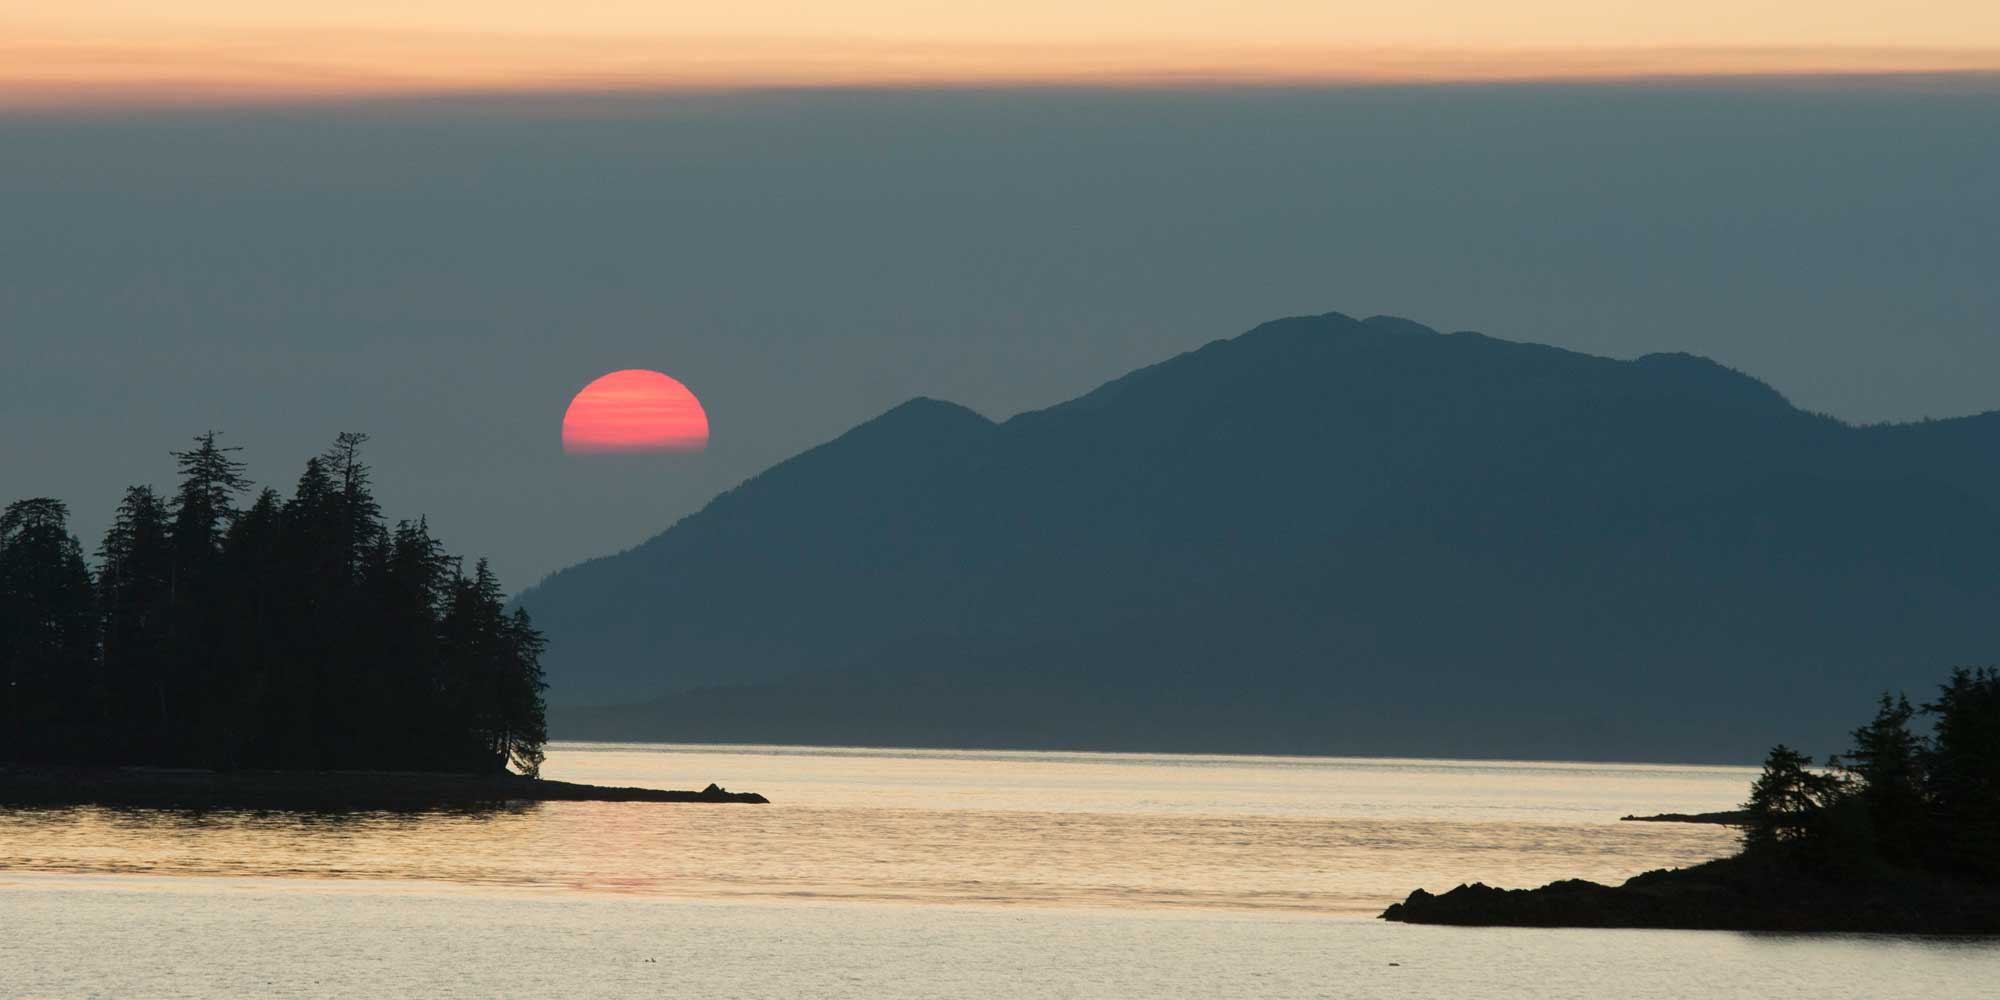 sunset over water with mountains and trees in silhouette